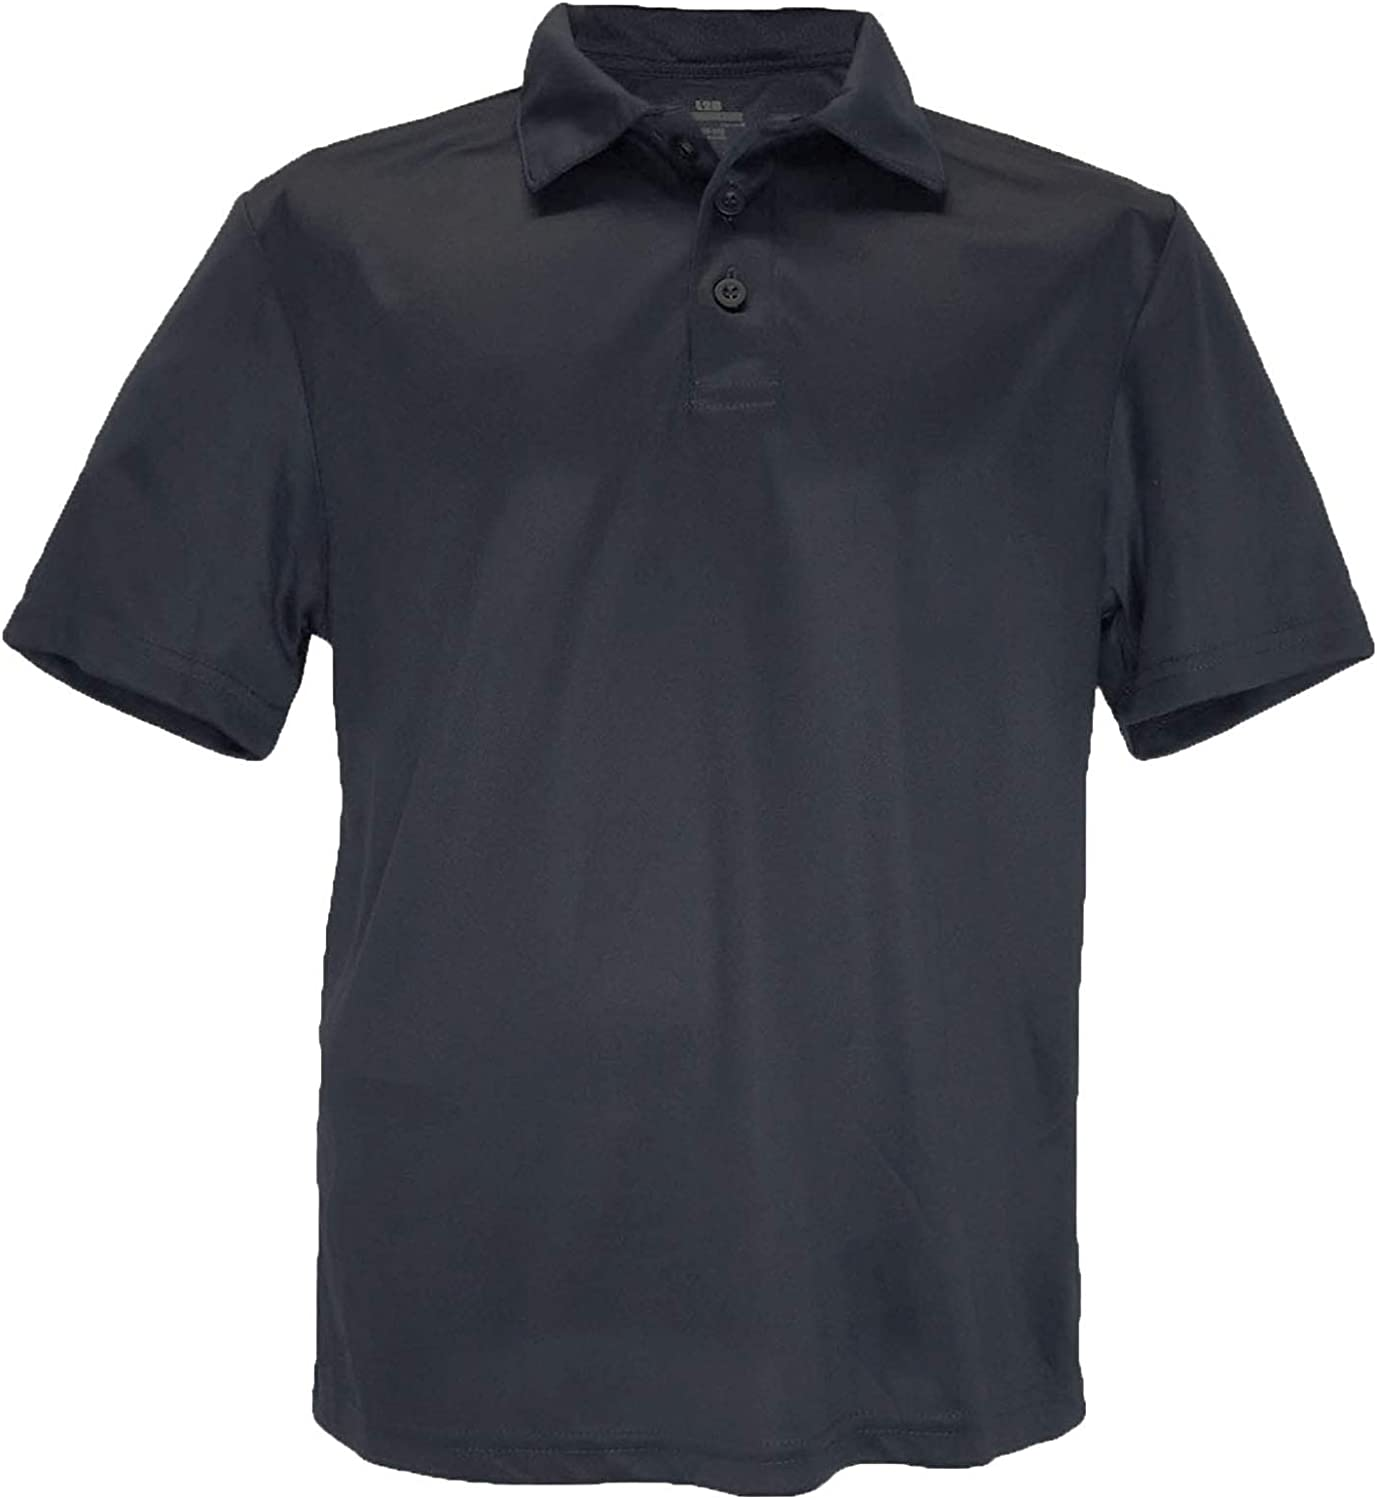 Performance Polo Shirt School Uniform No Fade Quick Dry Short Sleeve L2b Youth Athletic-Shirts